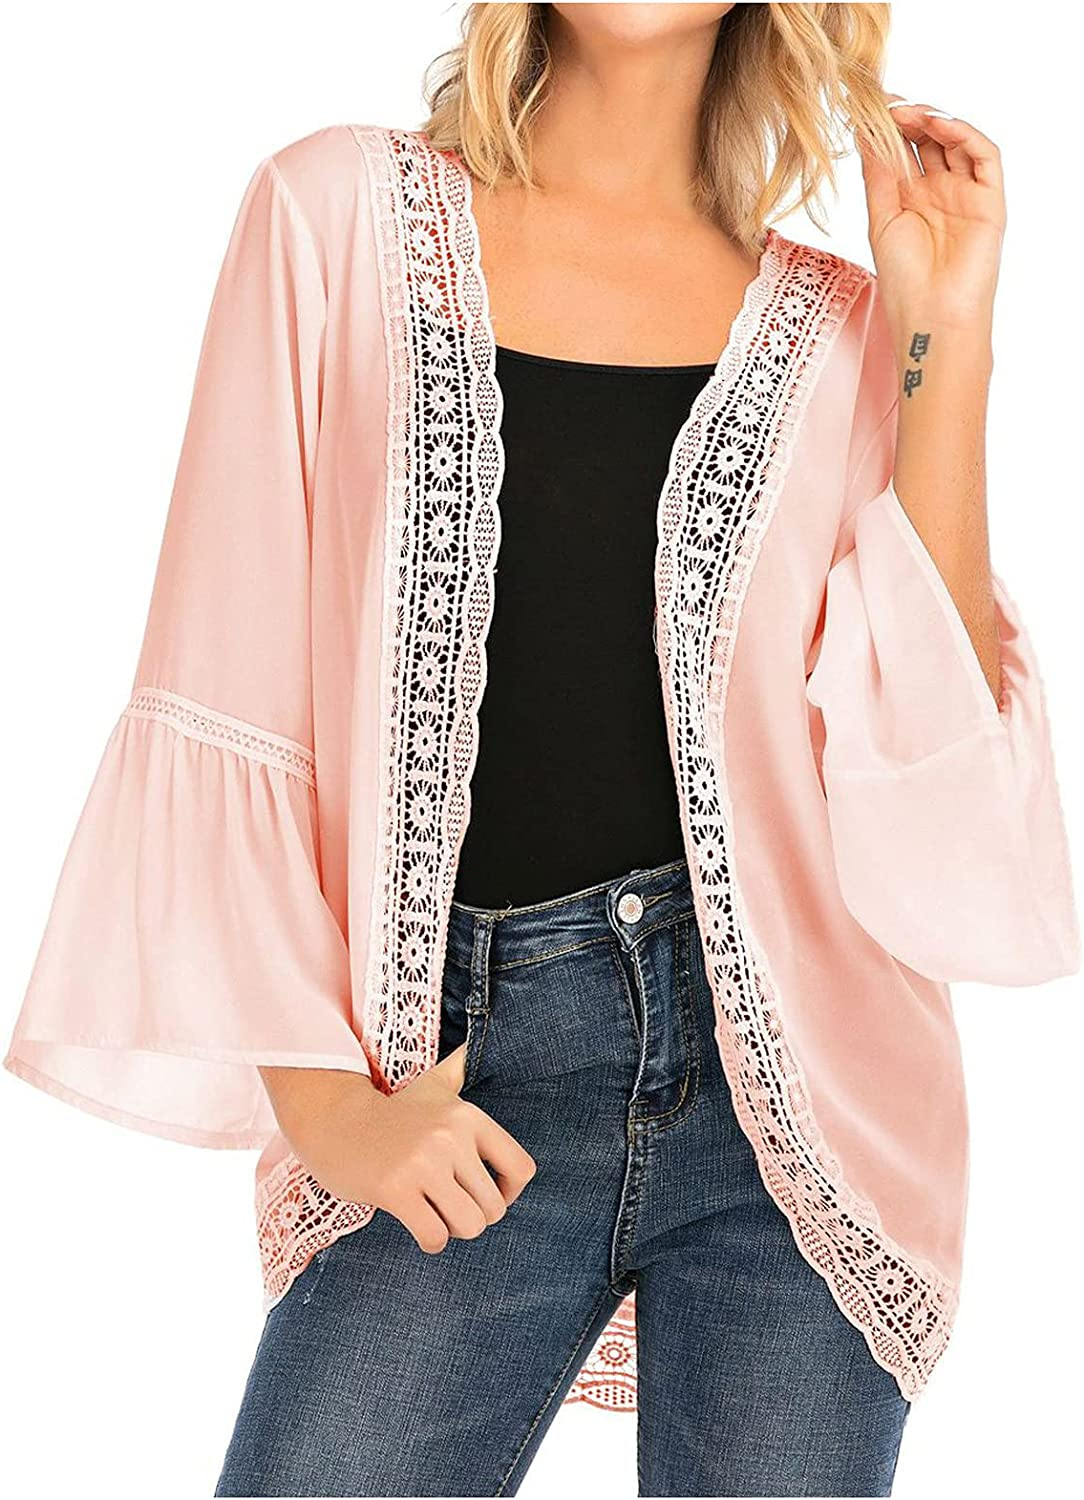 Women's Fashion Open Front Lace Solid Color Tops Tunic Casual Ruffle Sleeve Ladies Comfy Loose Jacket Coat Blouses Cardigan